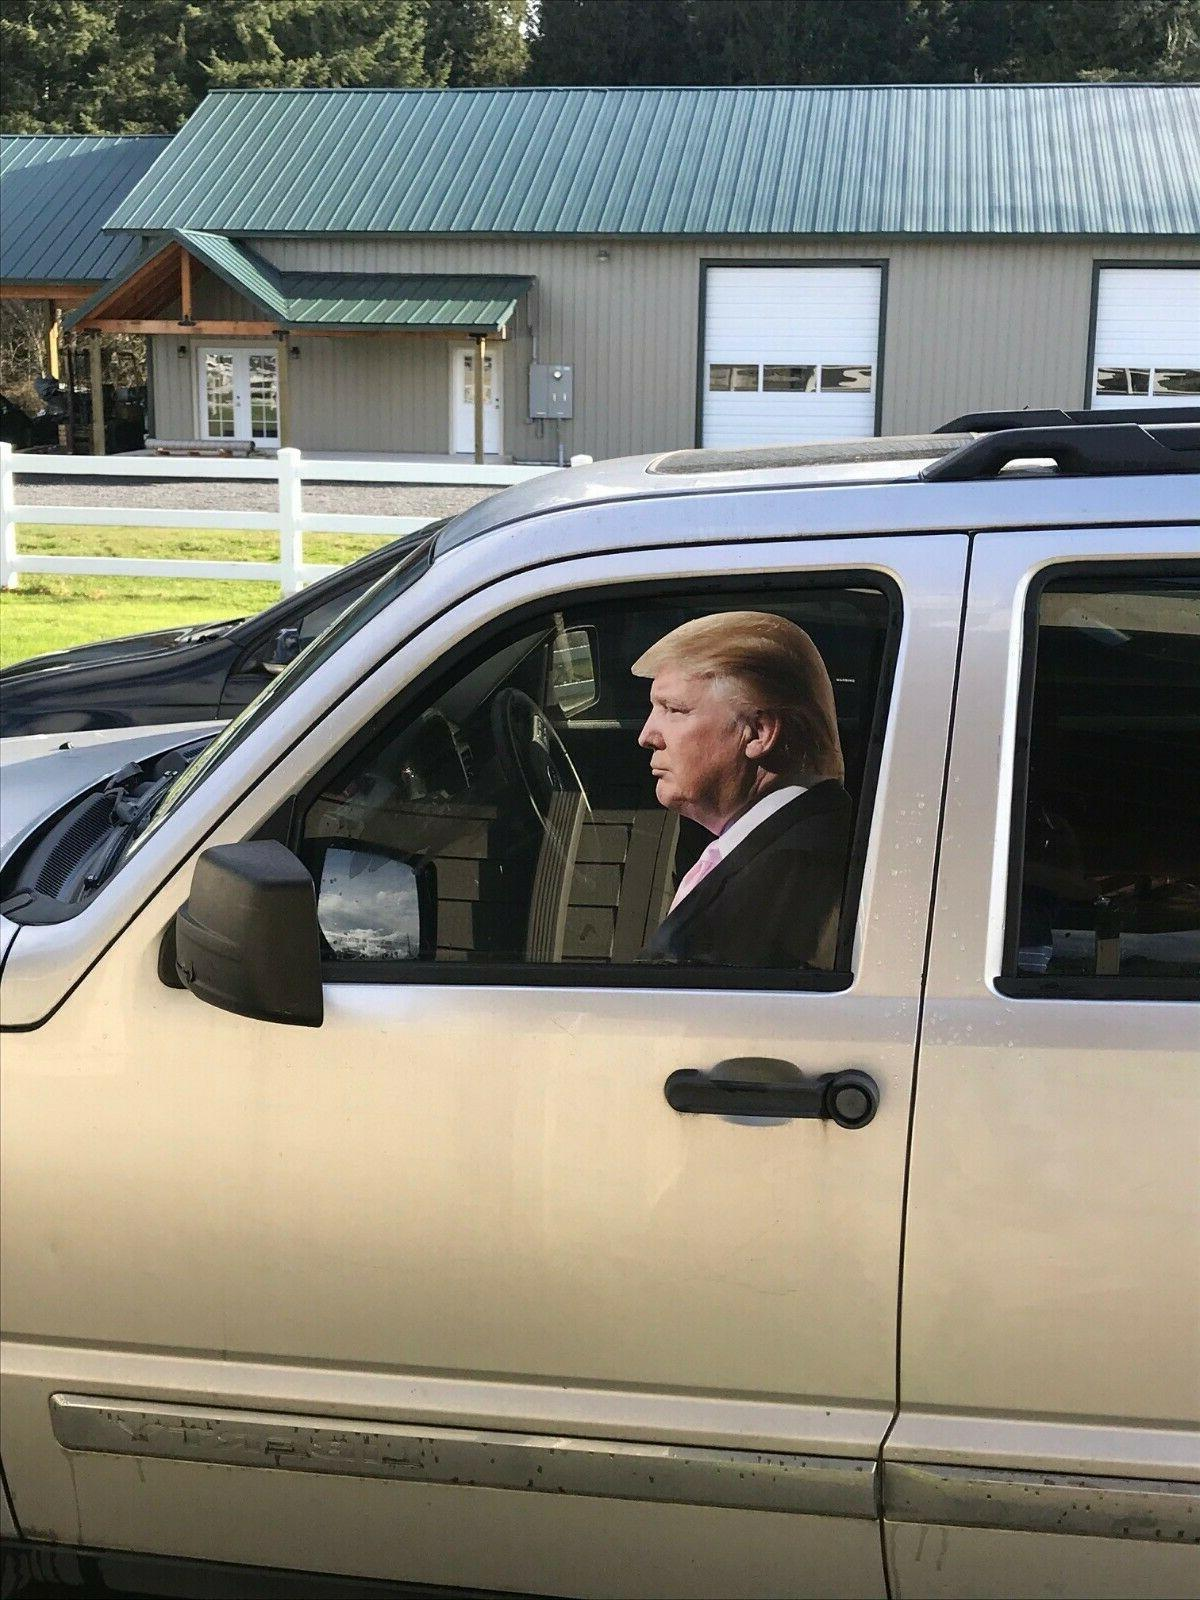 Trump car sticker, life size, adhesive back, passenger side